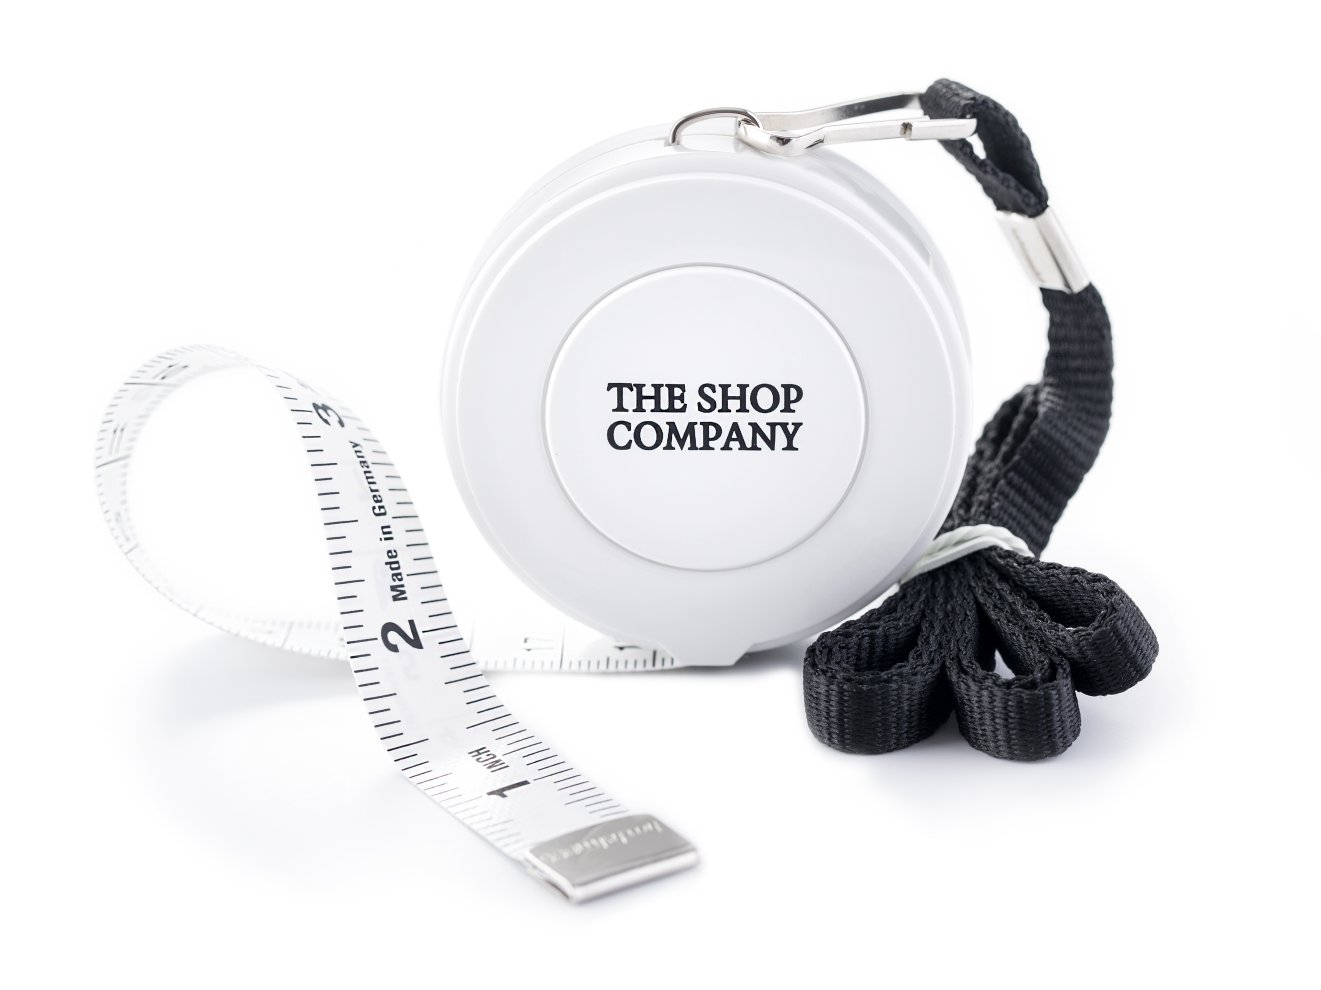 THE SHOP COMPANY Professional Grade Retractable Tape Measure - 120 inches & 300 centimeters TMR